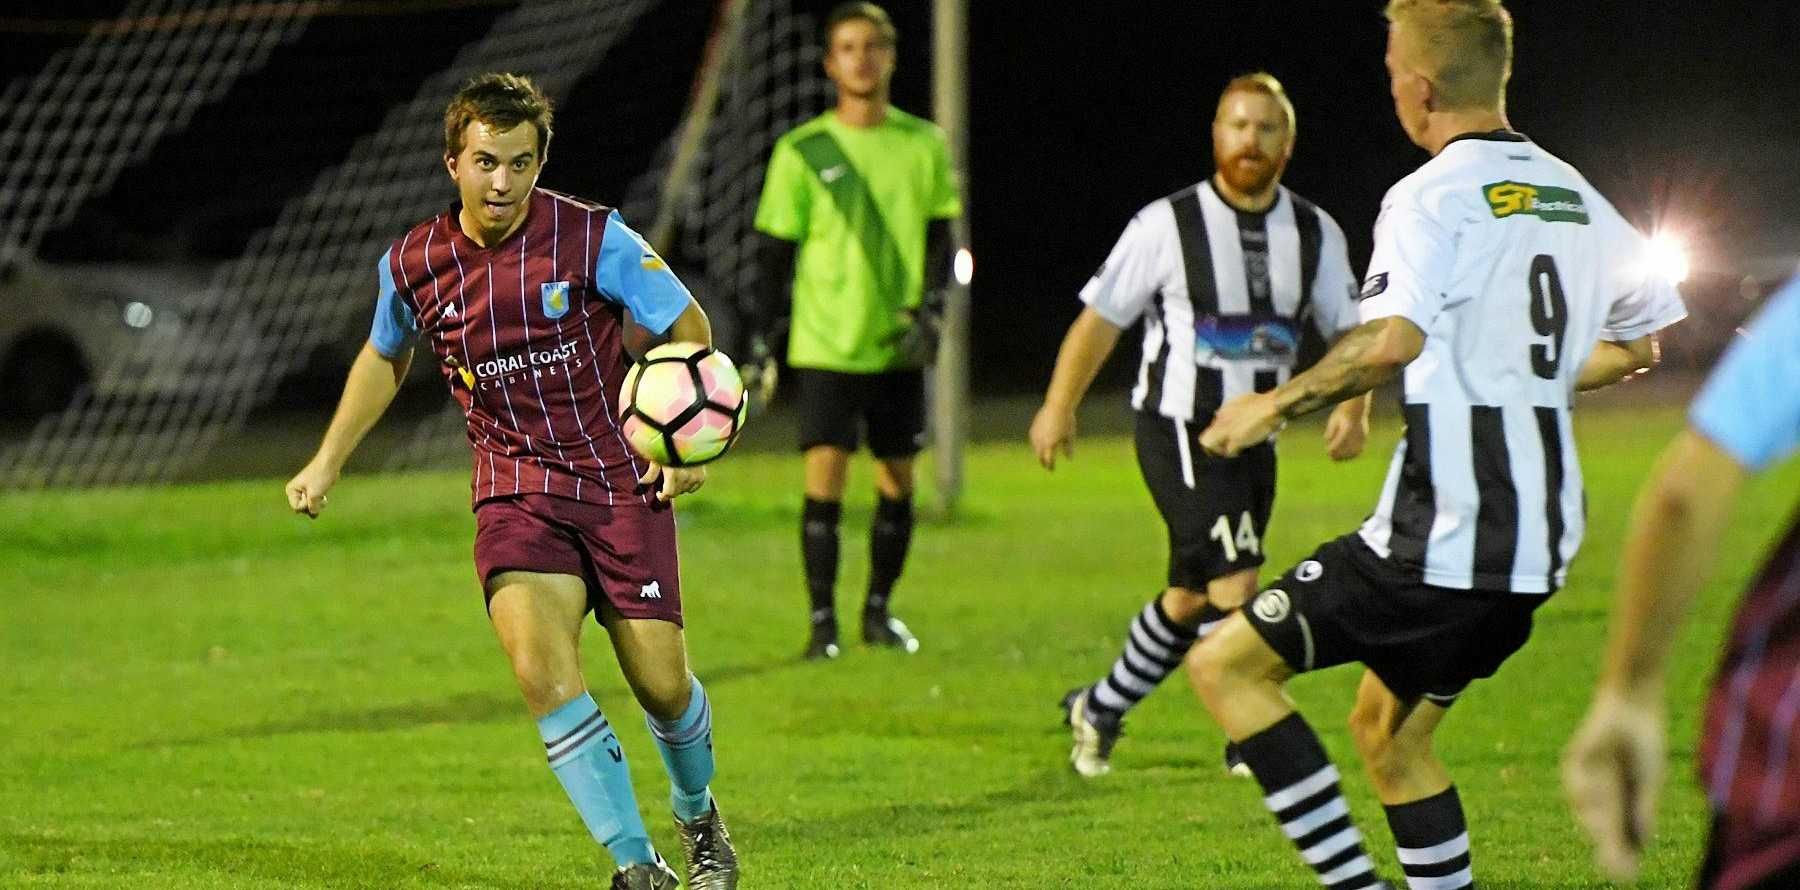 CLEARANCE: Brothers Aston Villa's Scott Sommer kicks the ball away from Bingera in Bundaberg.